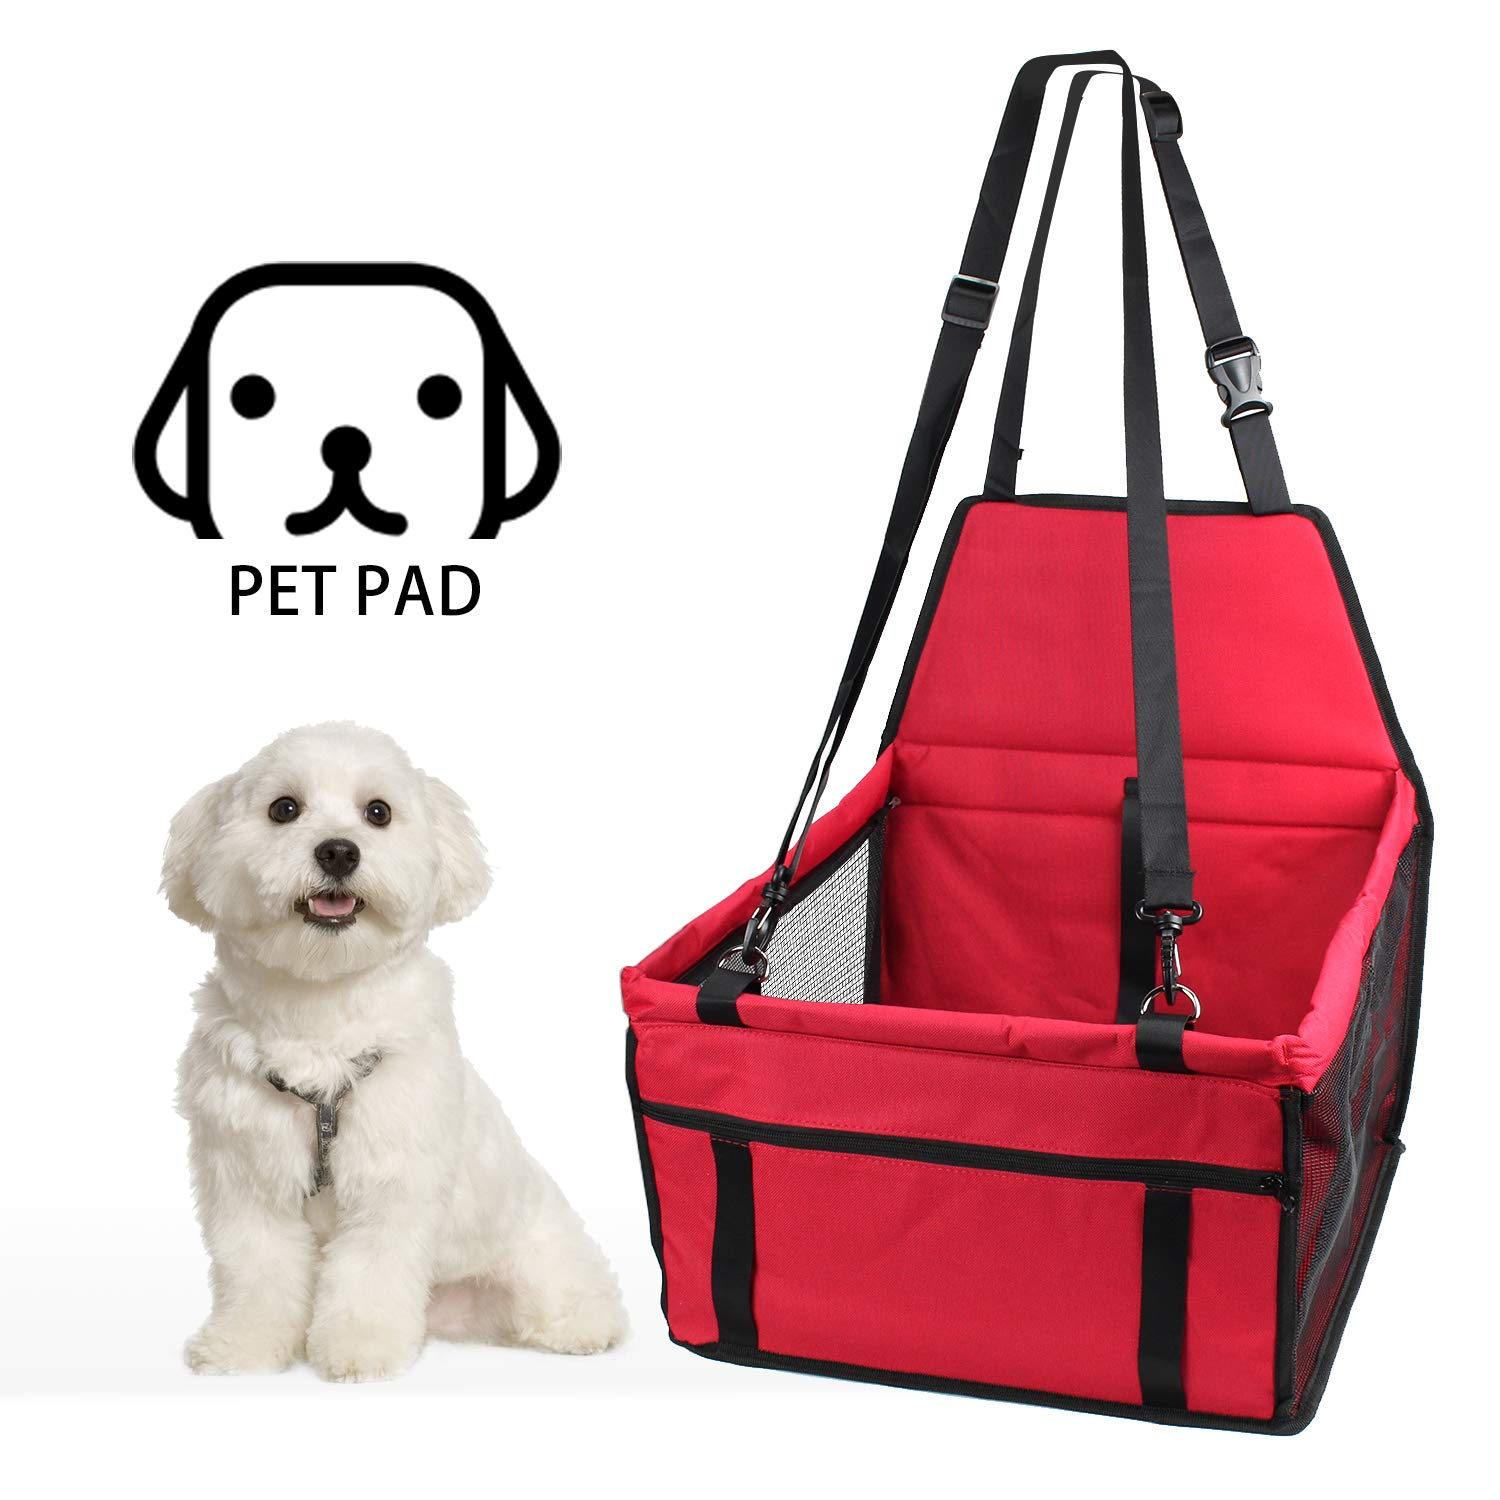 penobon Dog Booster Seat Pet Car Seat Carrier Protector Portable Foldable Carrier with Seat Belt Storage Package Dog Lookout Booster Car Seat Safety Fit for Small Pets Dog Cat Up to 15lbs by penobon